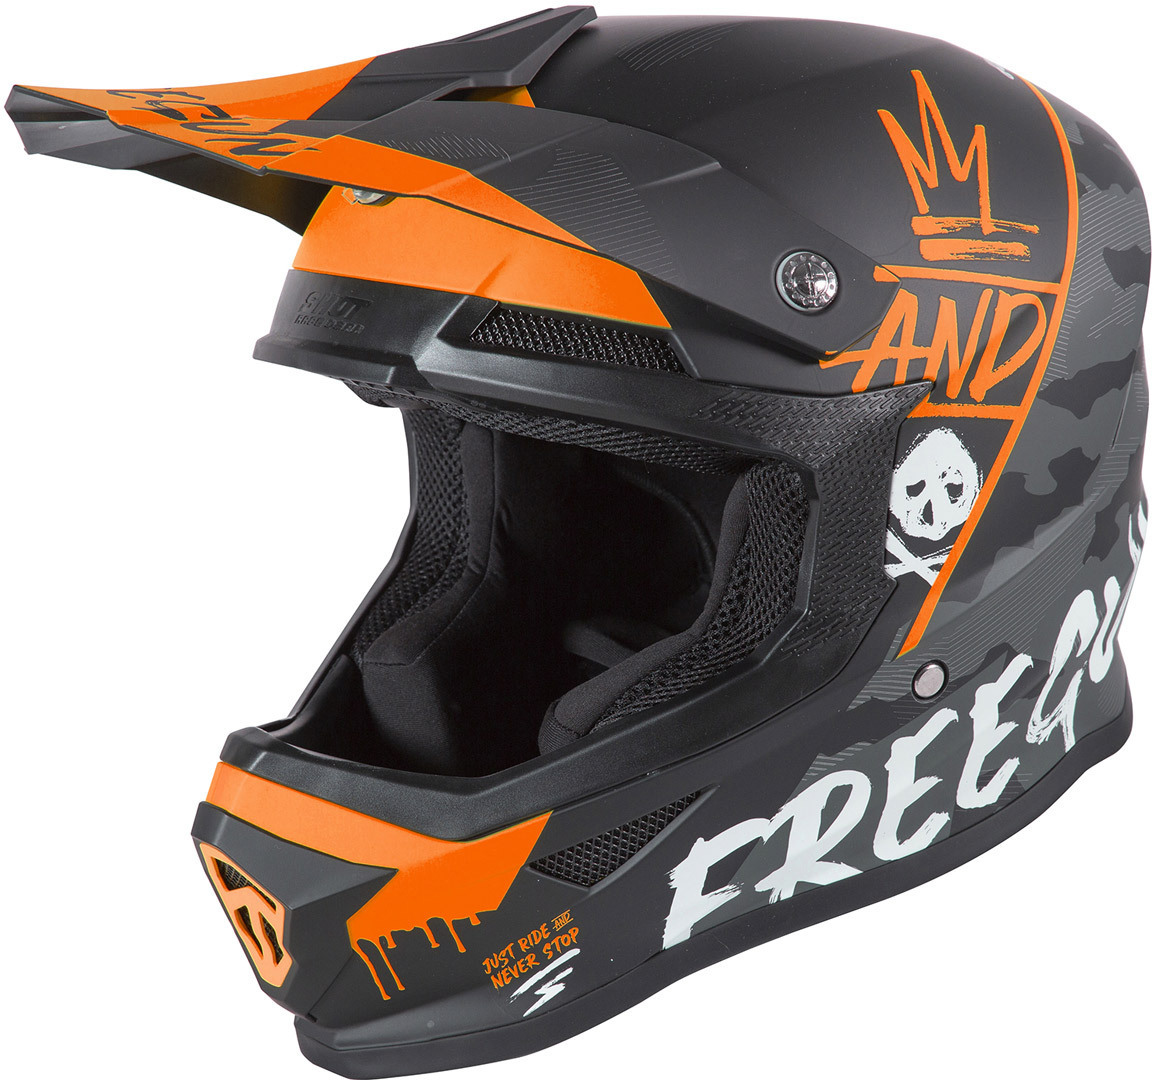 Freegun XP4 Camo Motocross Helm, orange, Größe L, orange, Größe L